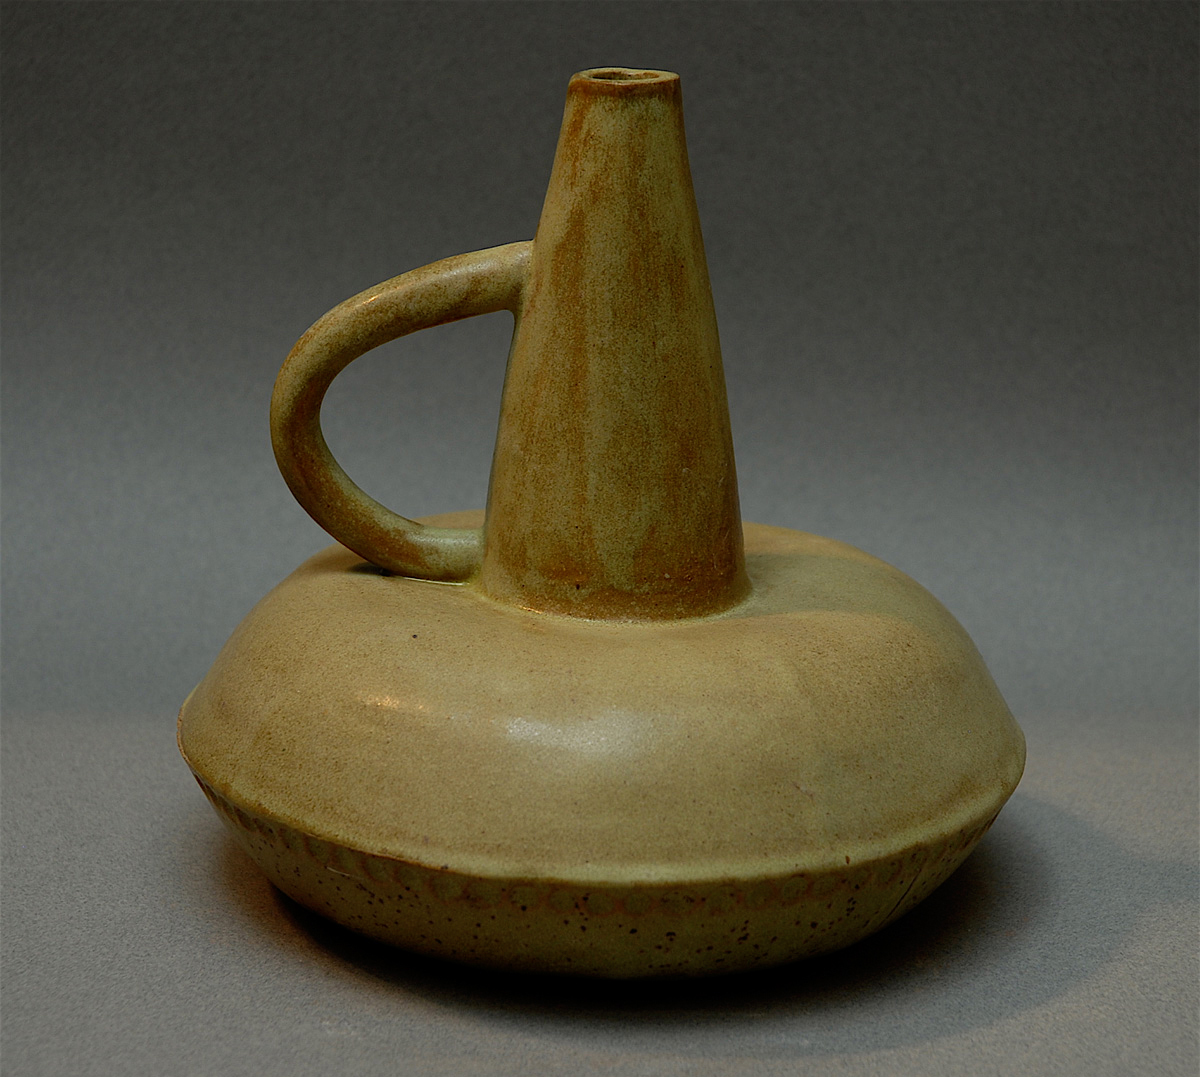 GREEN VESSEL WITH HANDLE